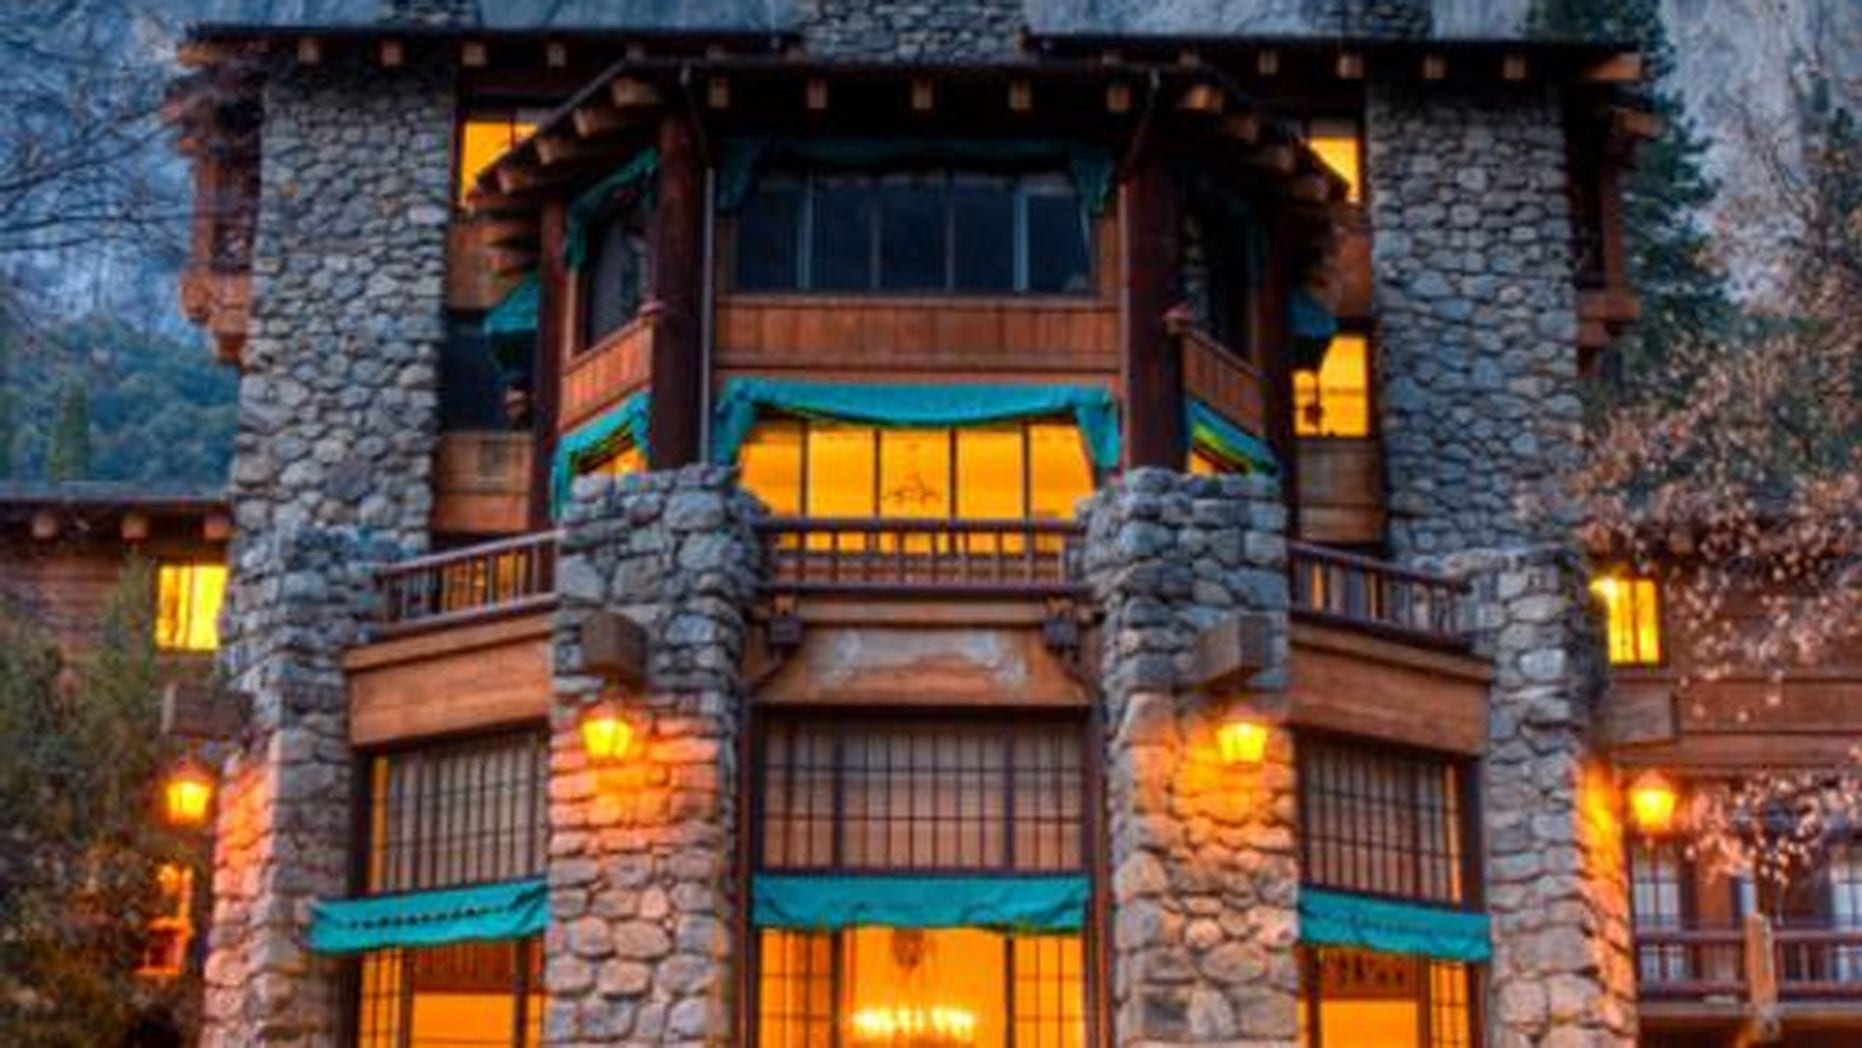 On Tuesday, the historic Ahwahnee Hotel will become the Majestic Yosemite Hotel and Curry Village campground will be named Half Dome Village.